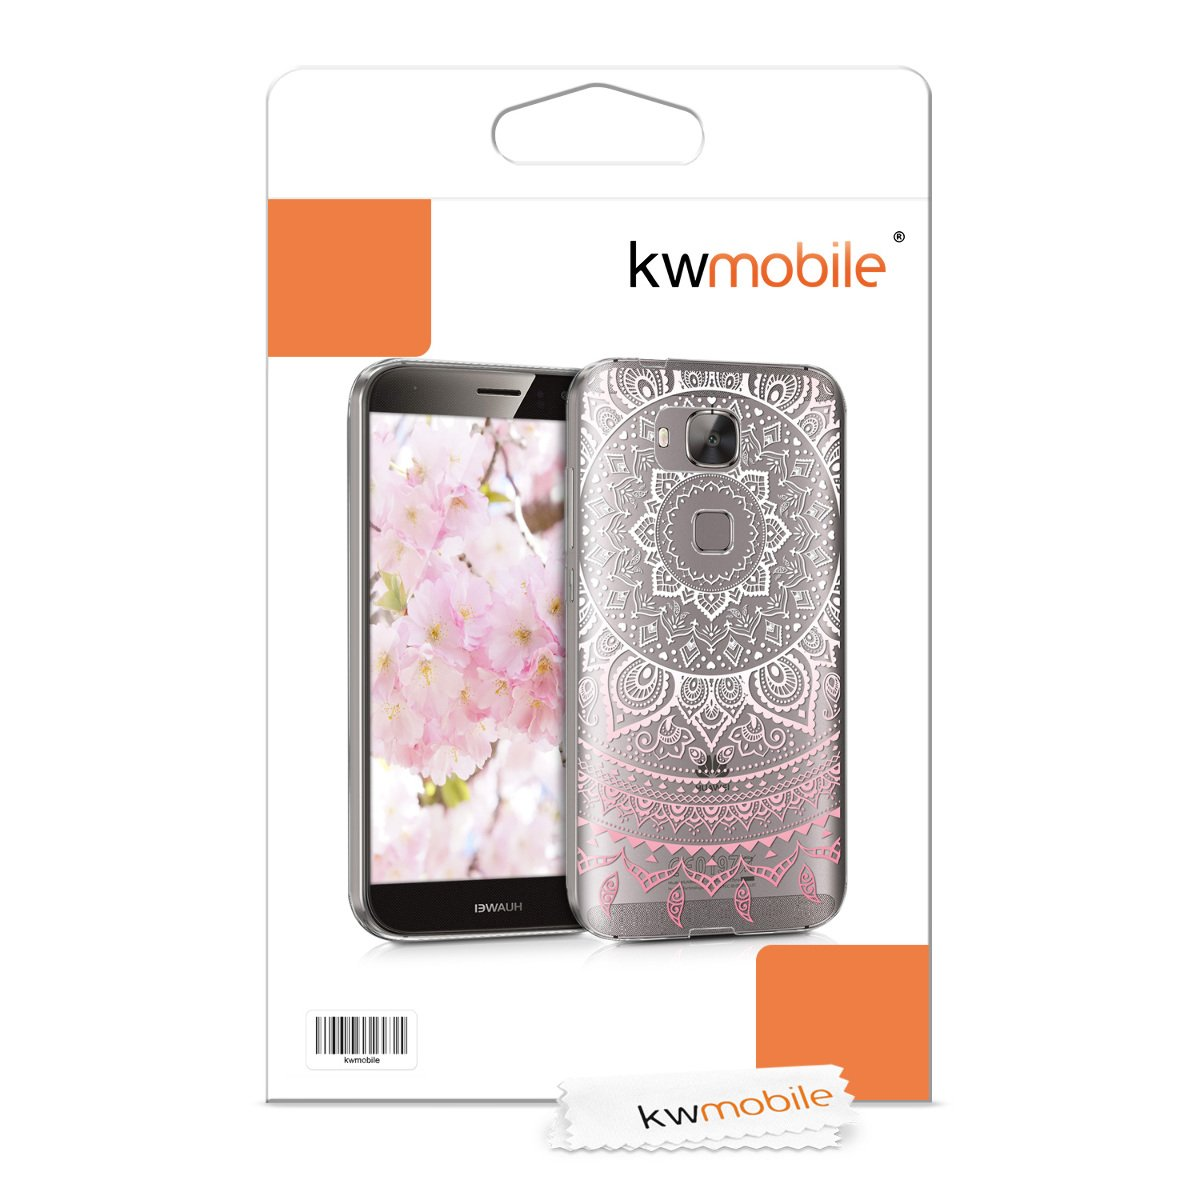 kwmobile TPU Silicone Case for Huawei G8 / GX8 - Crystal Clear Smartphone Back Case Protective Cover - Light Pink/White/Transparent